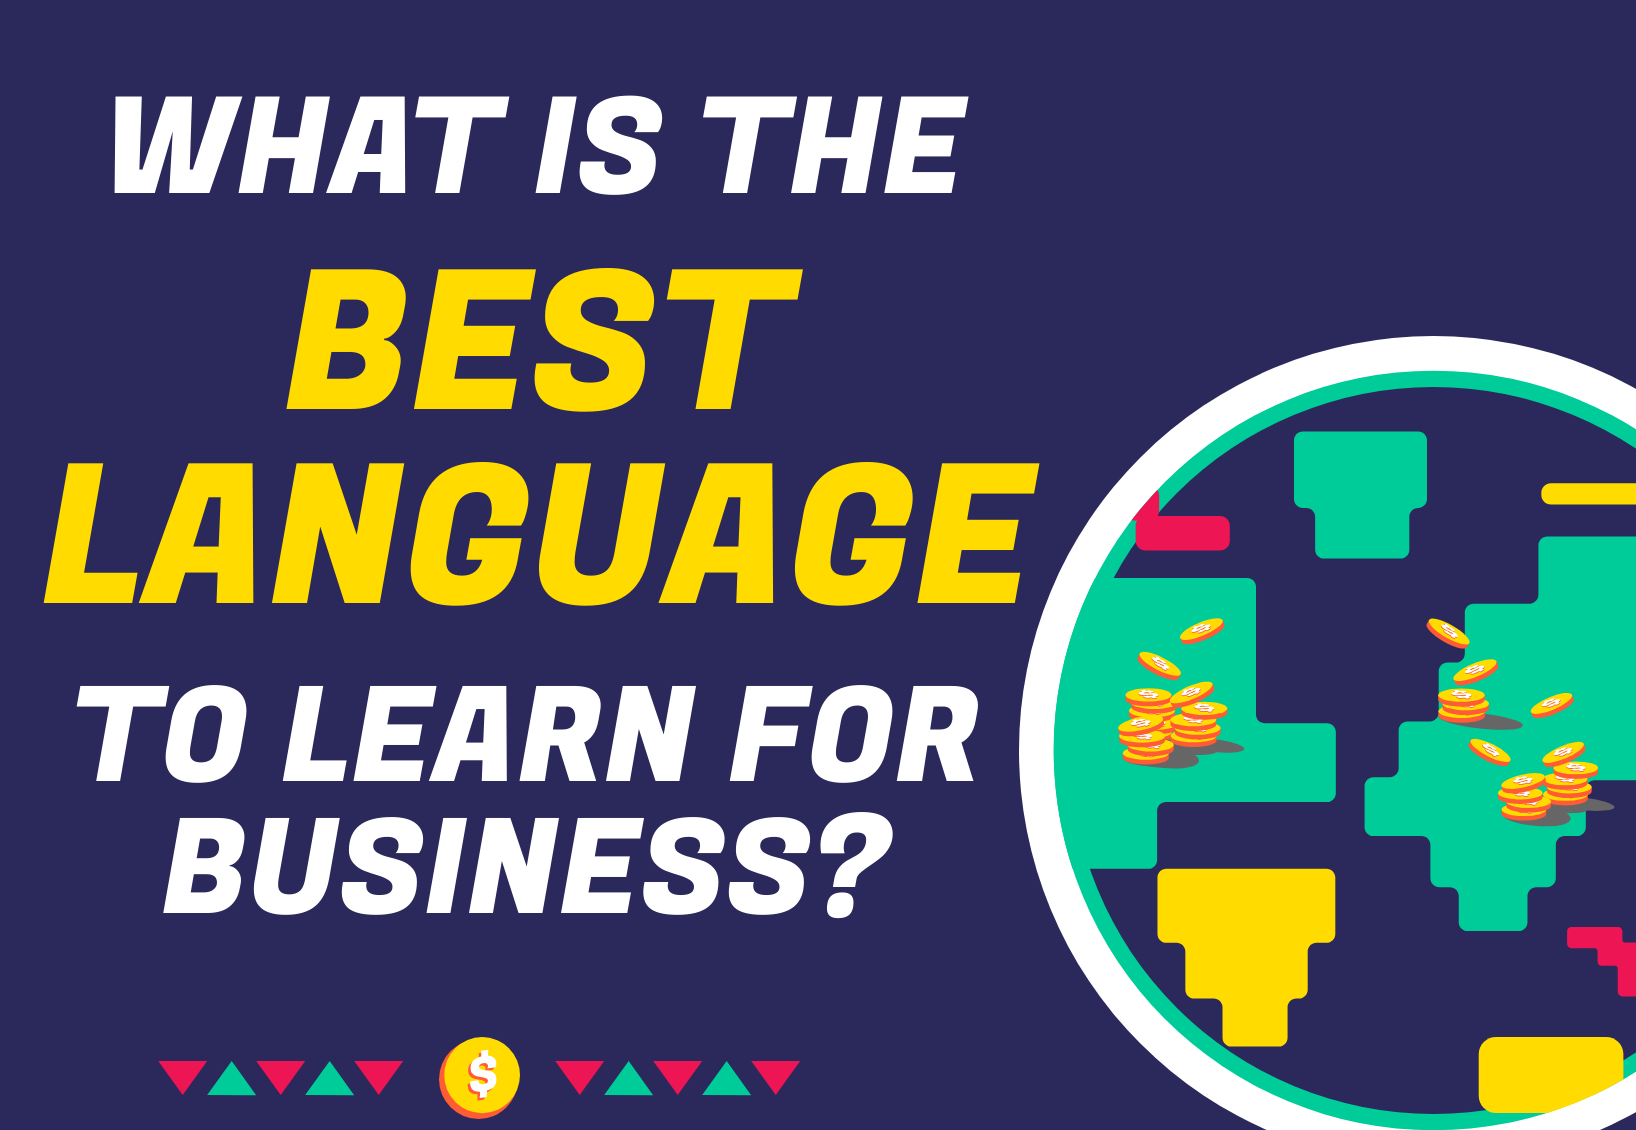 What Is The Best Language to Learn for Business?